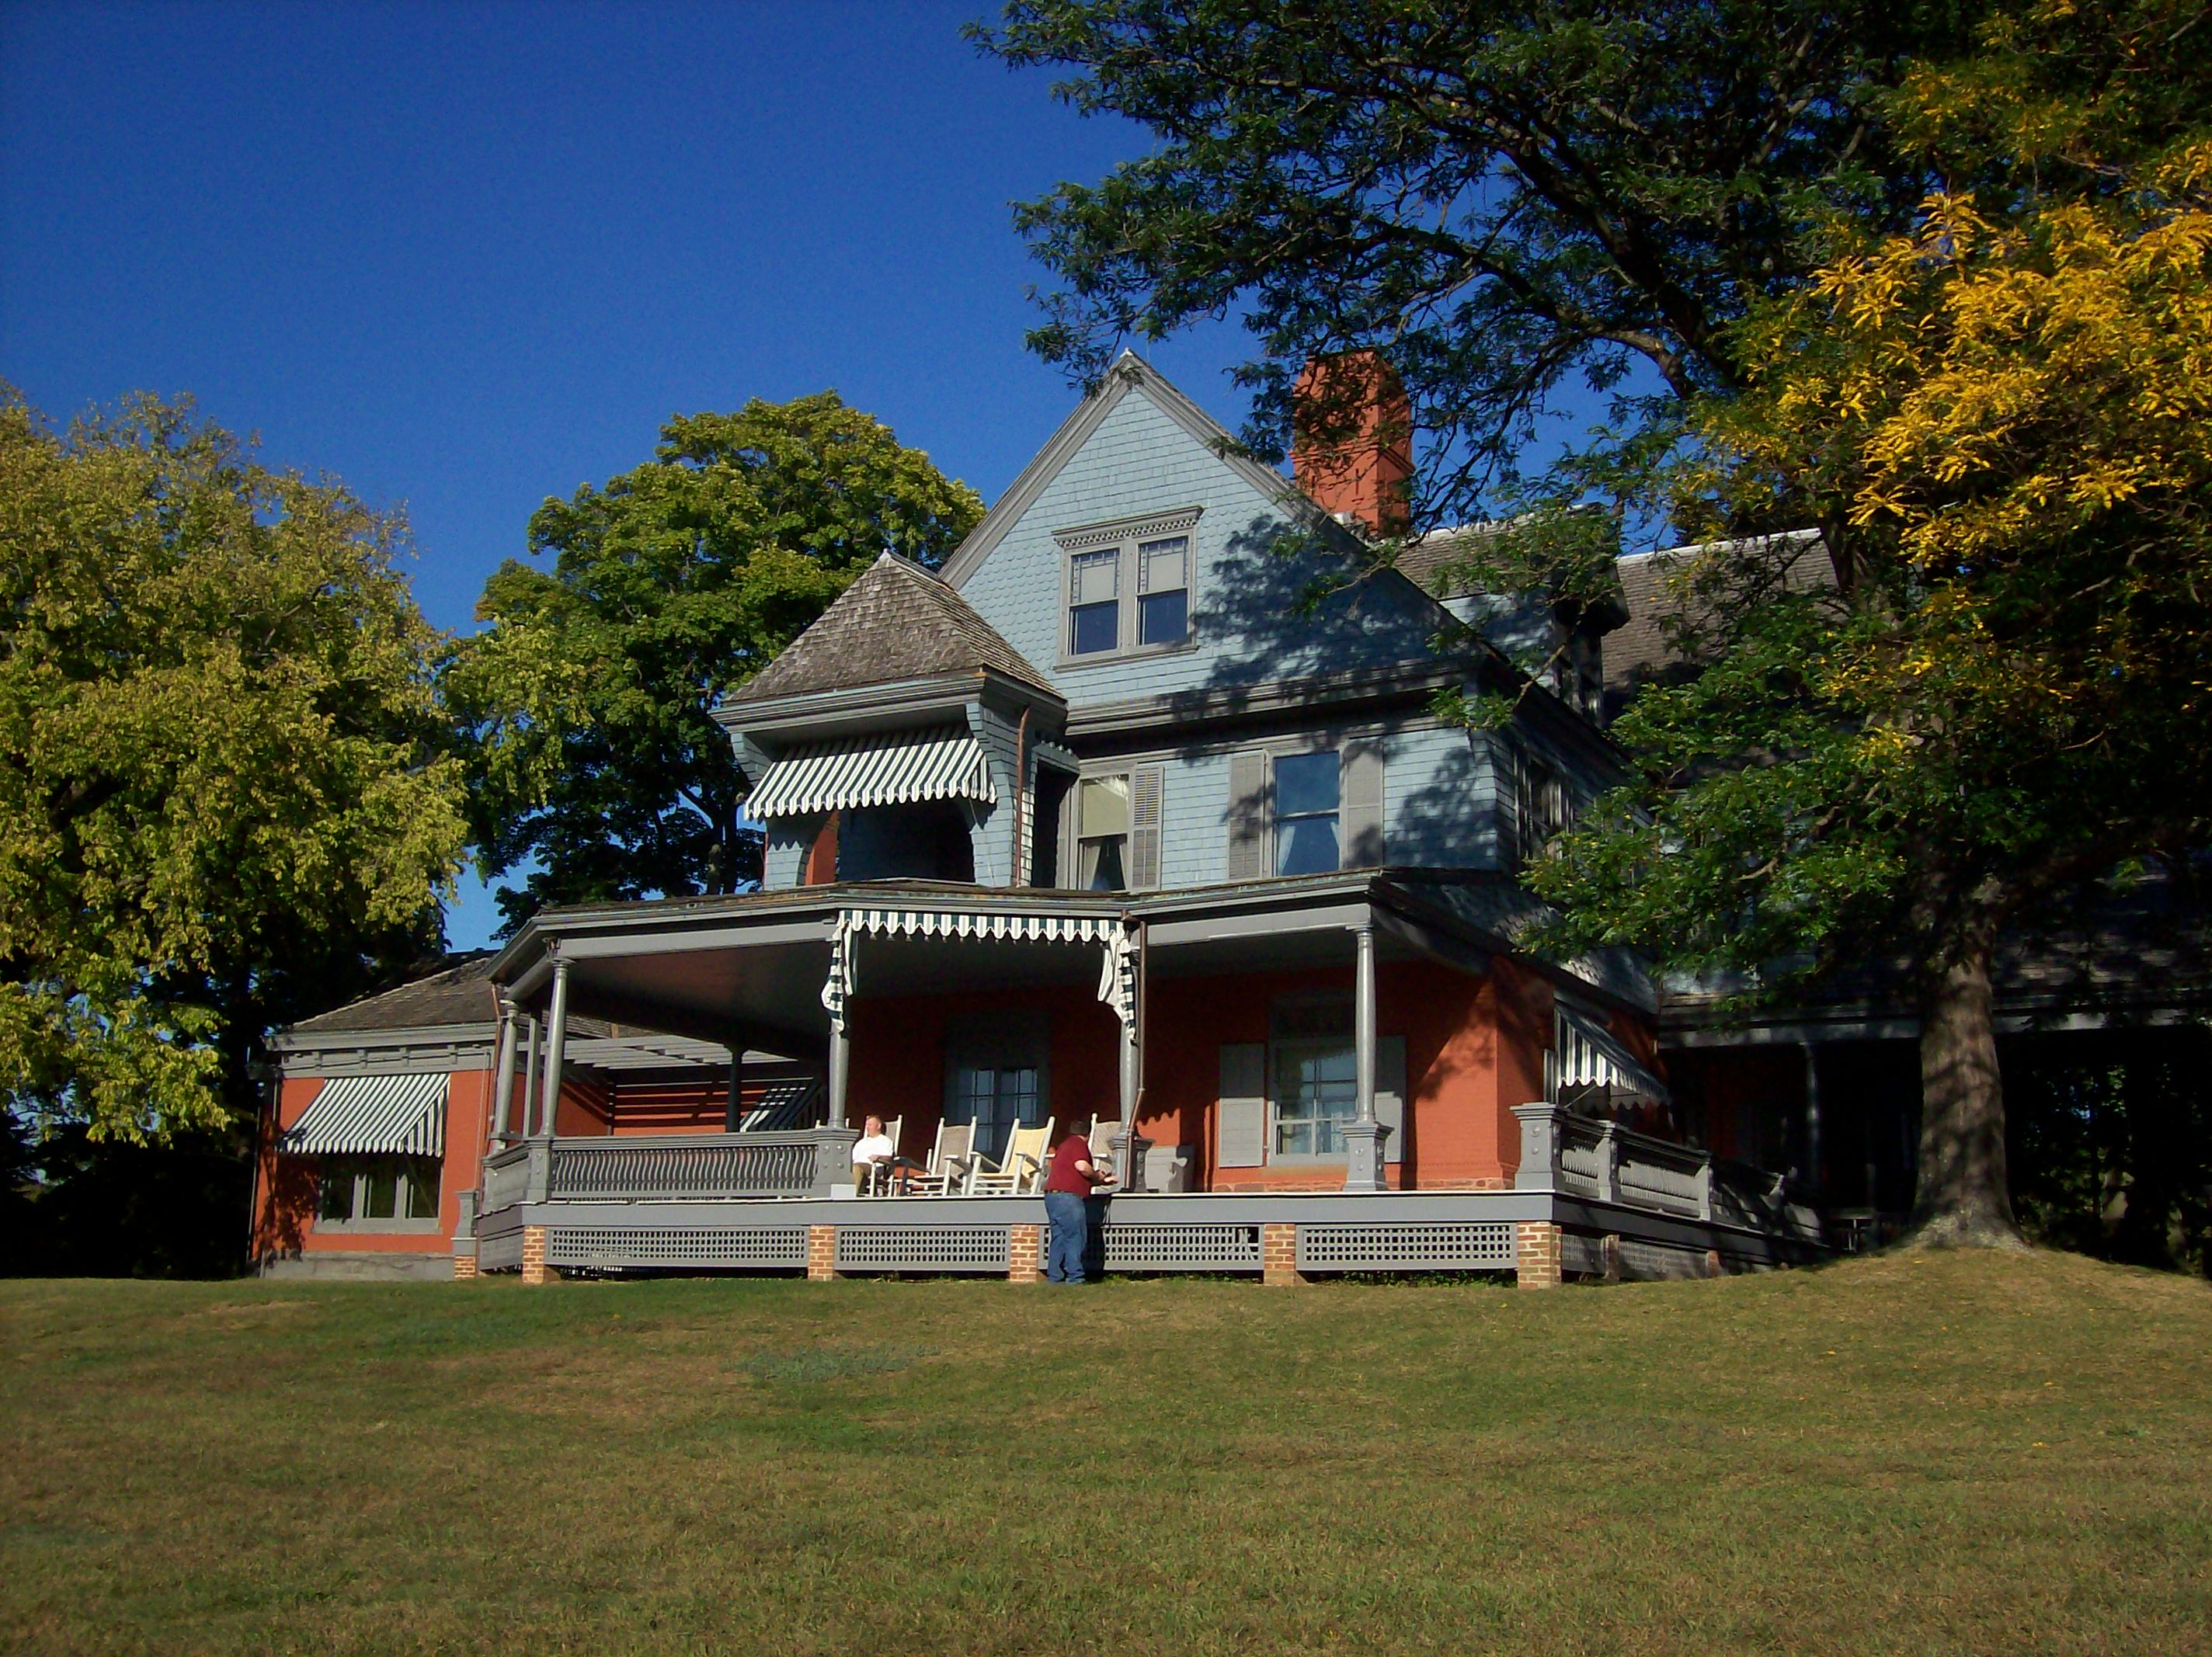 Theodore Roosevelt's Queen Anne style home Sagamore Hill. Guided tours are available for visitors to view many of Roosevelt's original furnishings, gifts from foreign dignitaries, and hunting prizes.